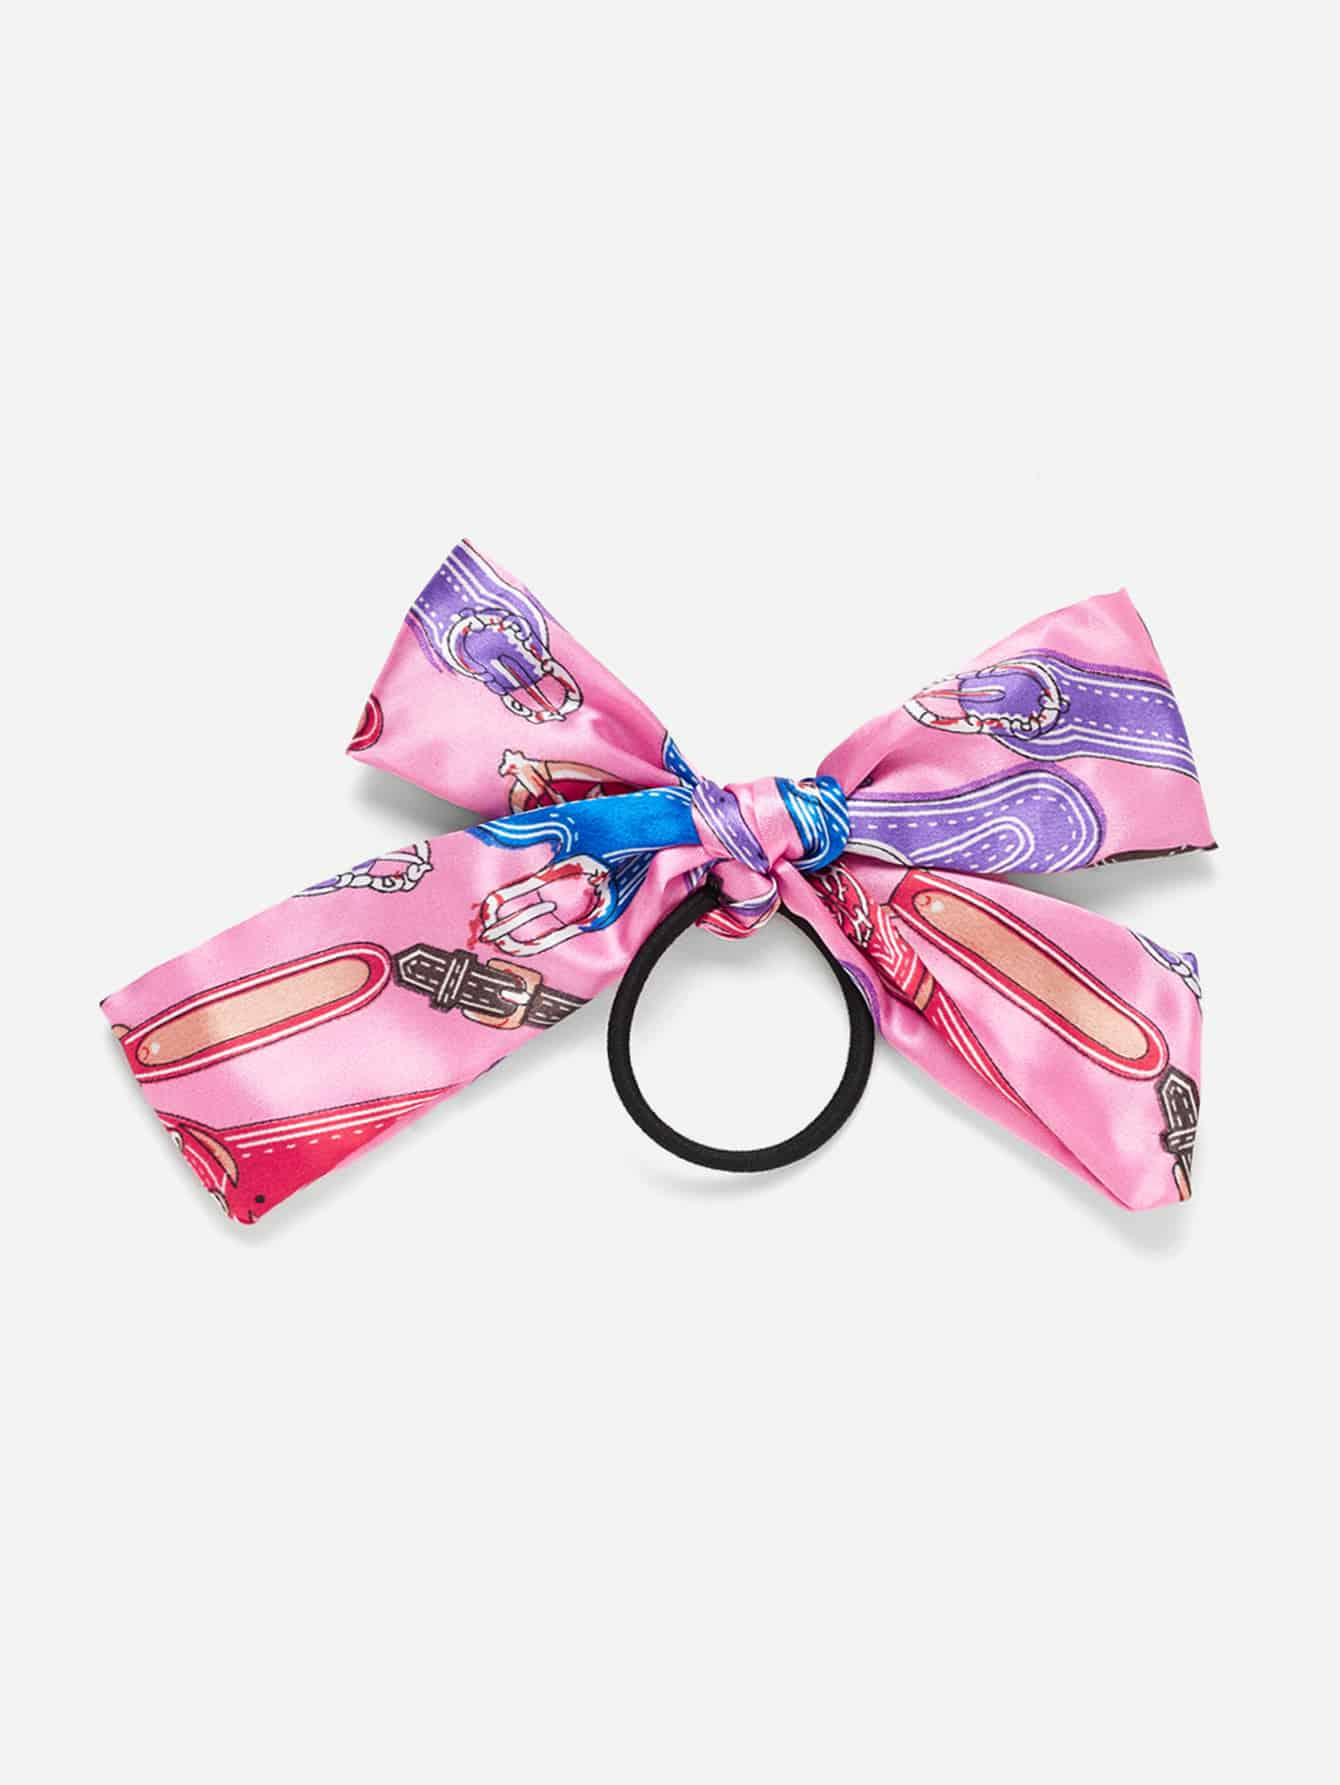 Ribbon Bow Hair Tie ywhuansen 2pcs lot 4 7inch grosgrain ribbon boutique large solid bow girls hair clips kid hairpin children hair accessories